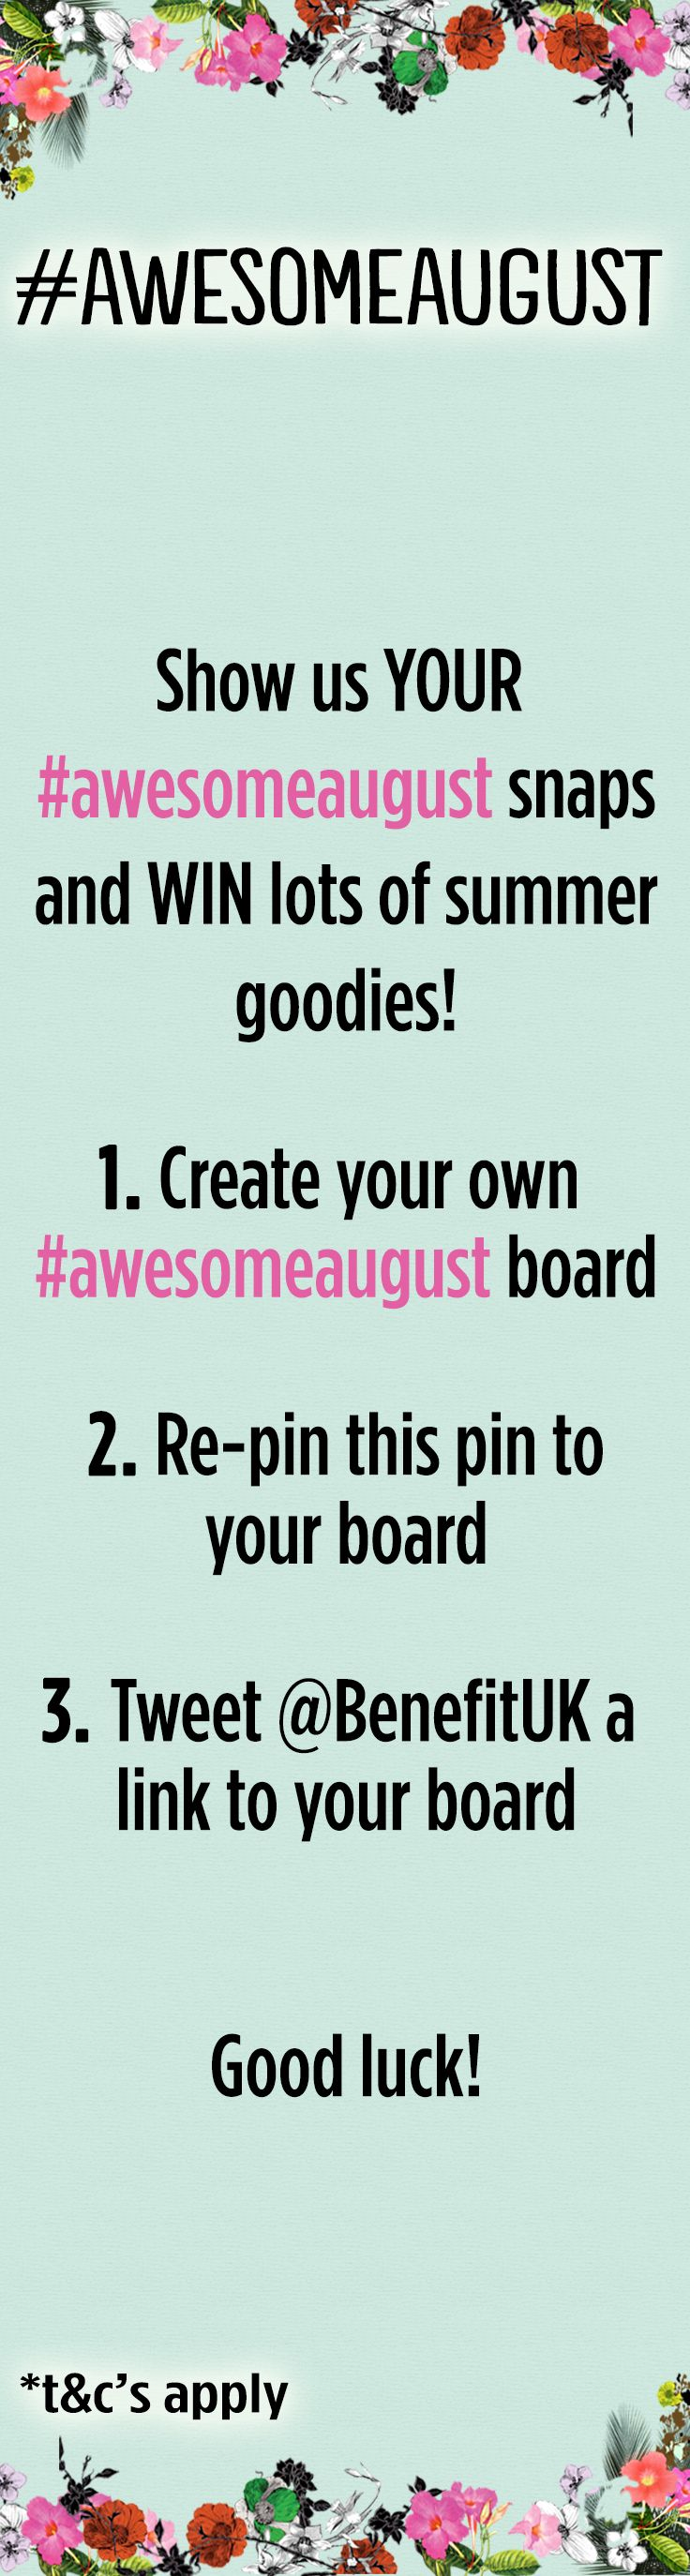 Don't forget to enter our competition via Twitter! #awesomeaugust